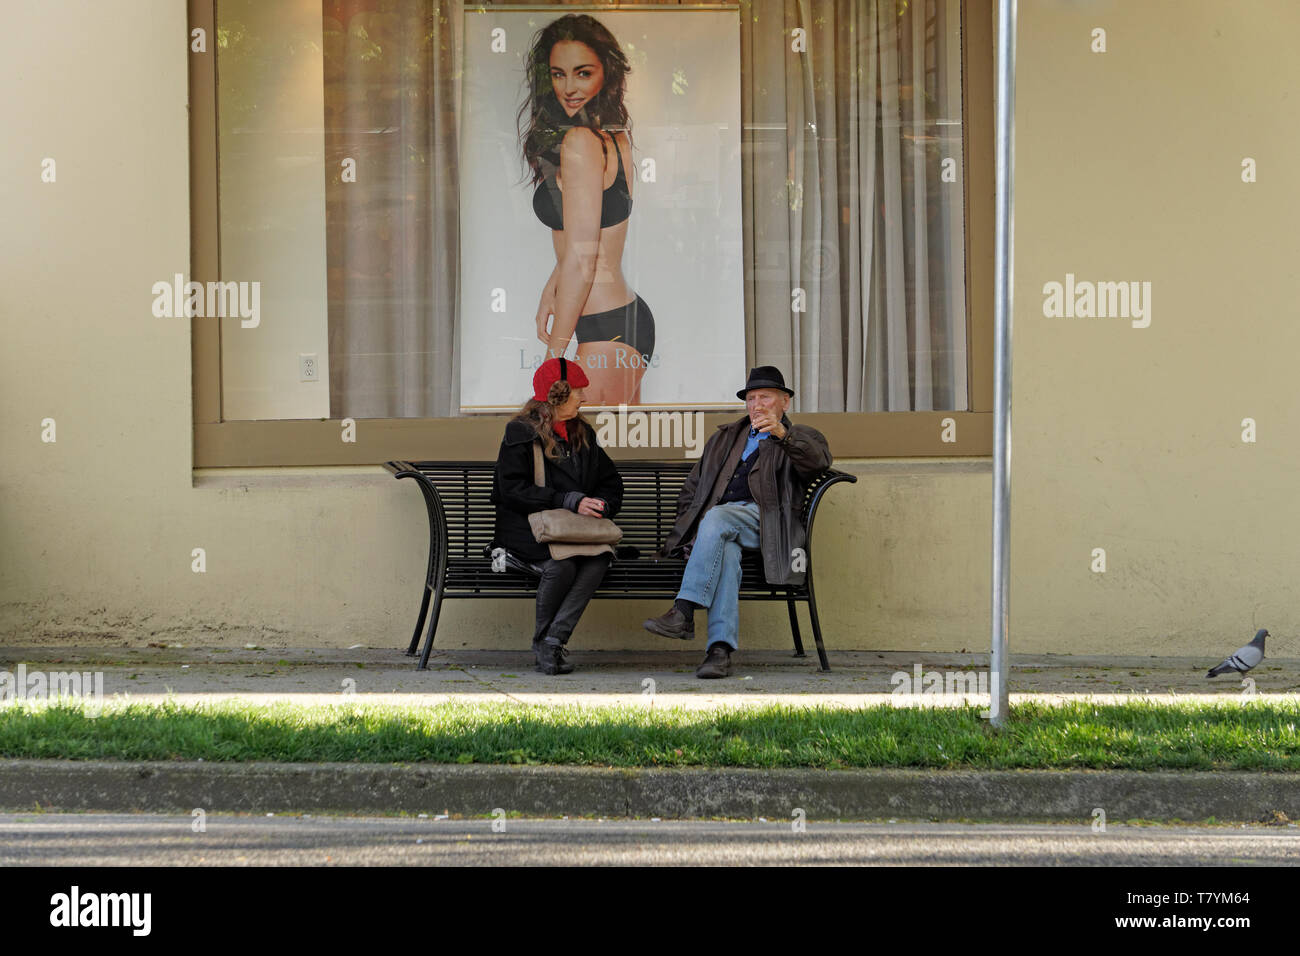 elderly-woman-and-man-sitting-on-a-bench